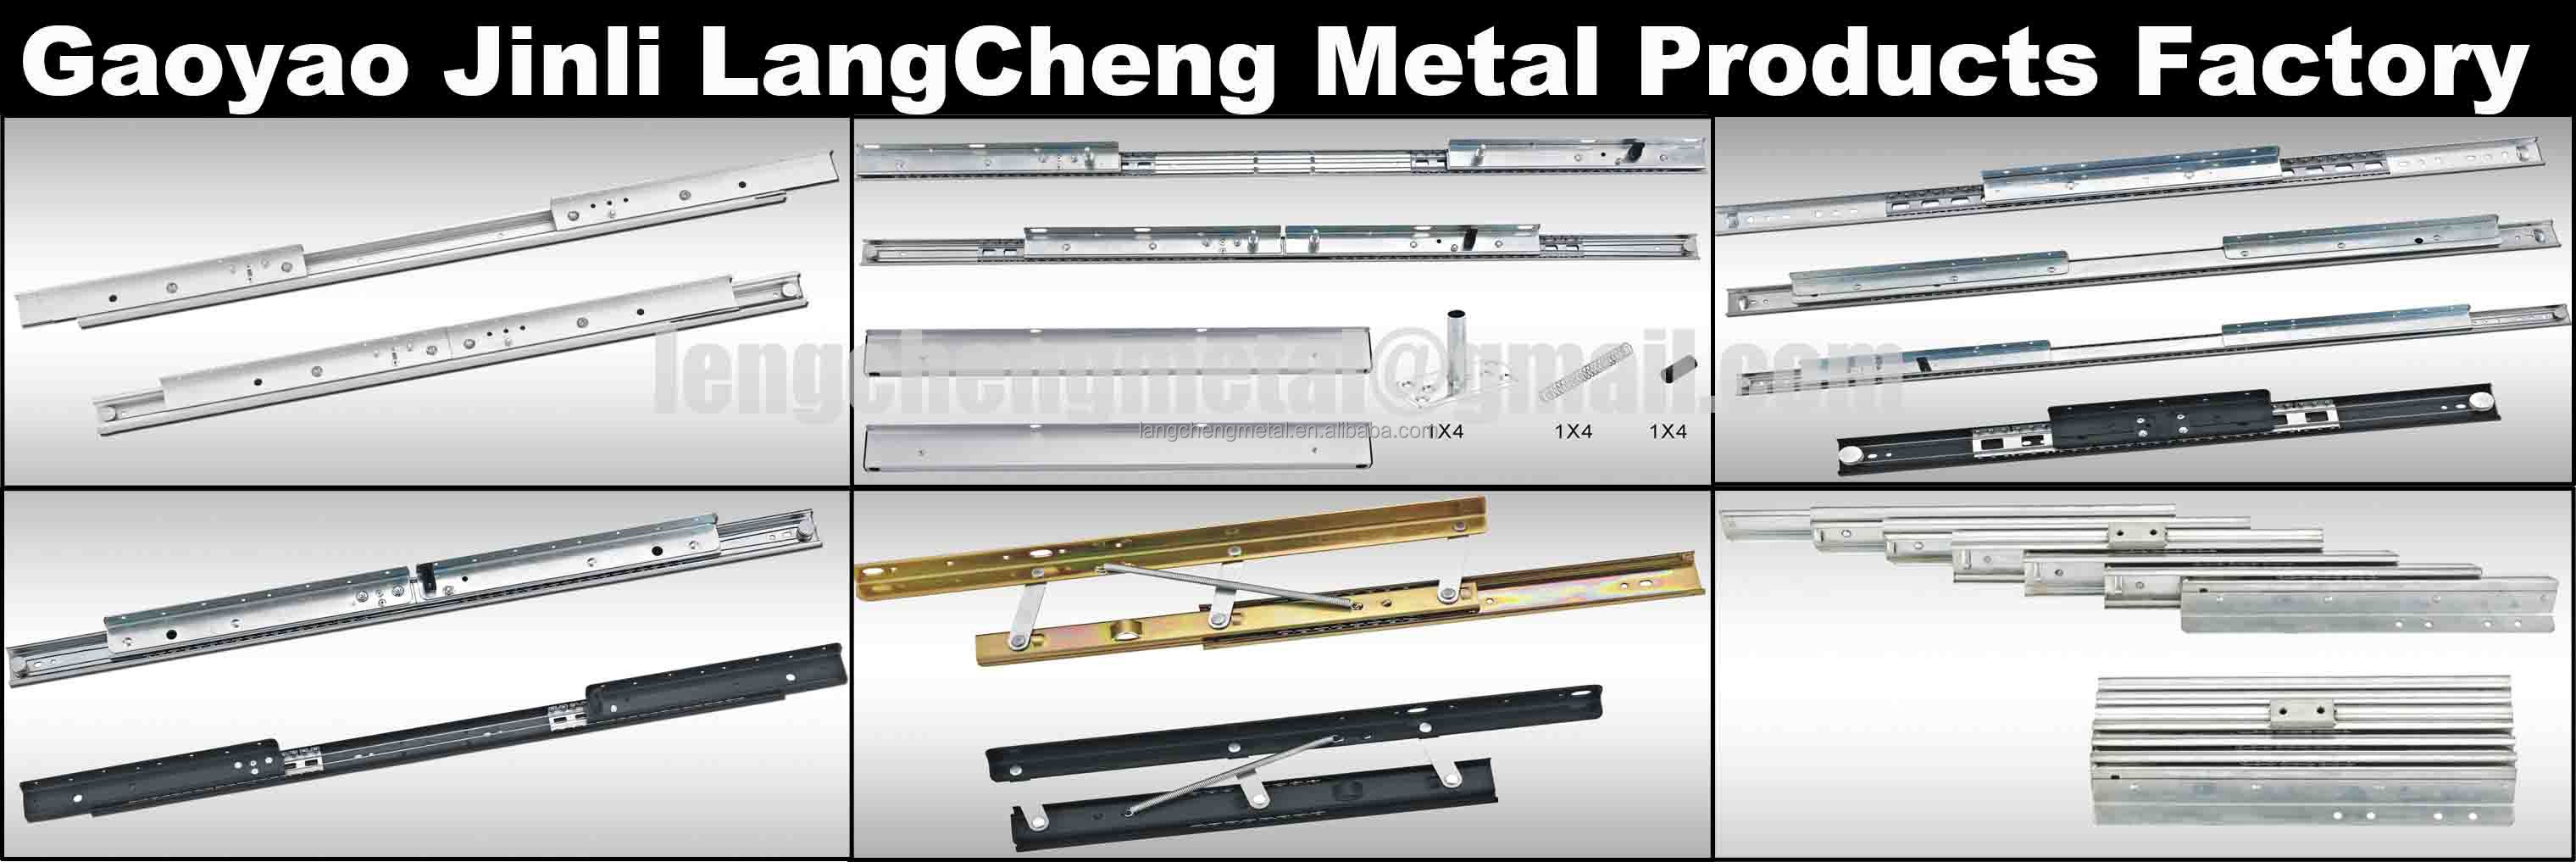 Heavy gauge steel standard diningroom table extension slides